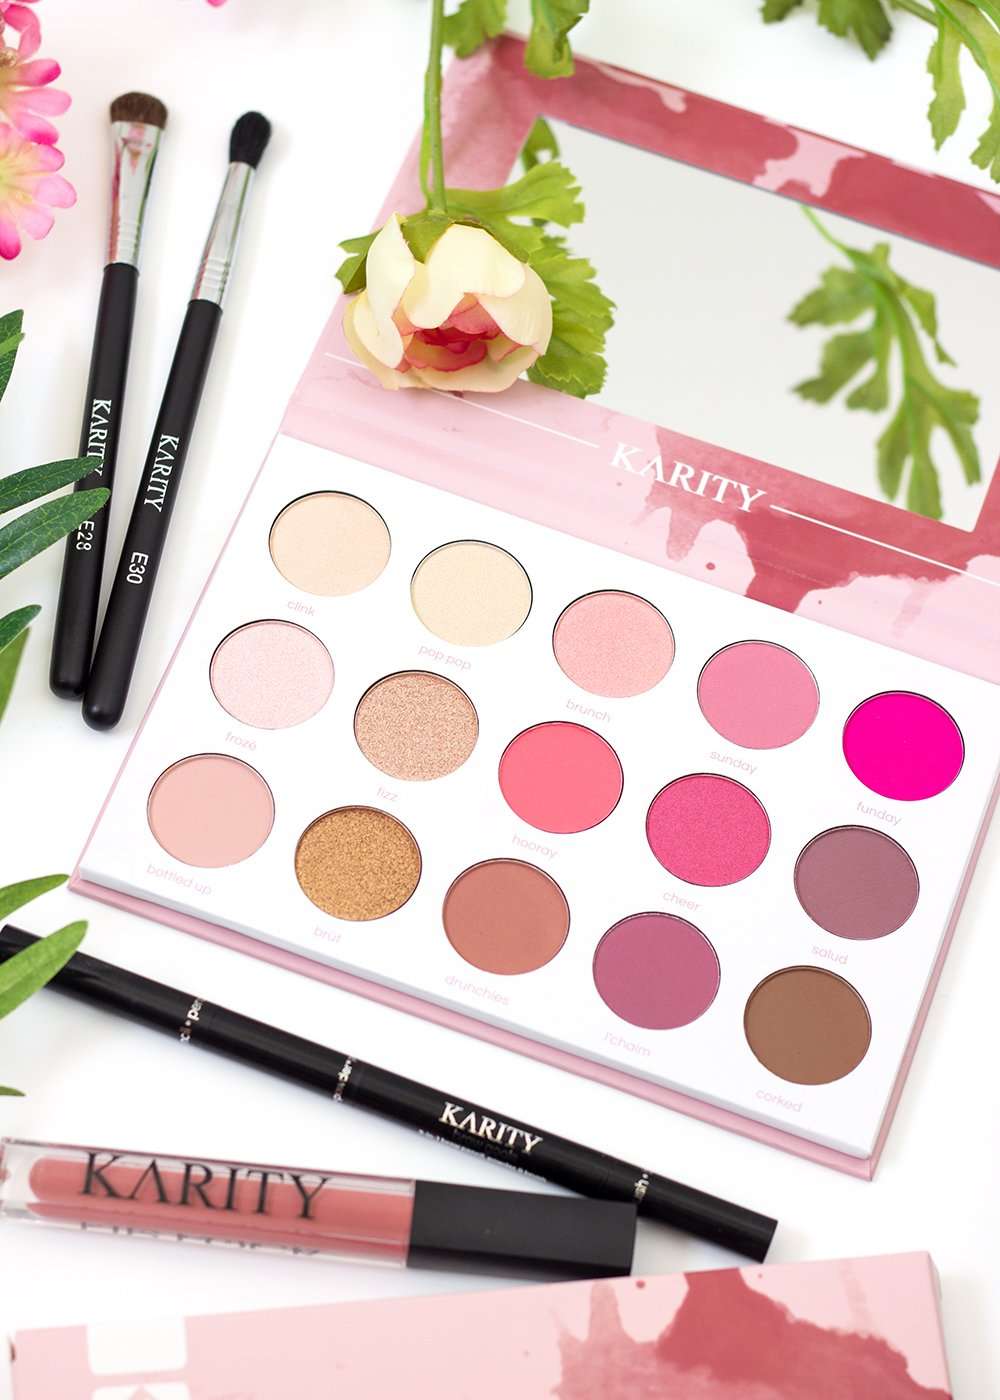 Karity Rosé All Day Eyeshadow Palette